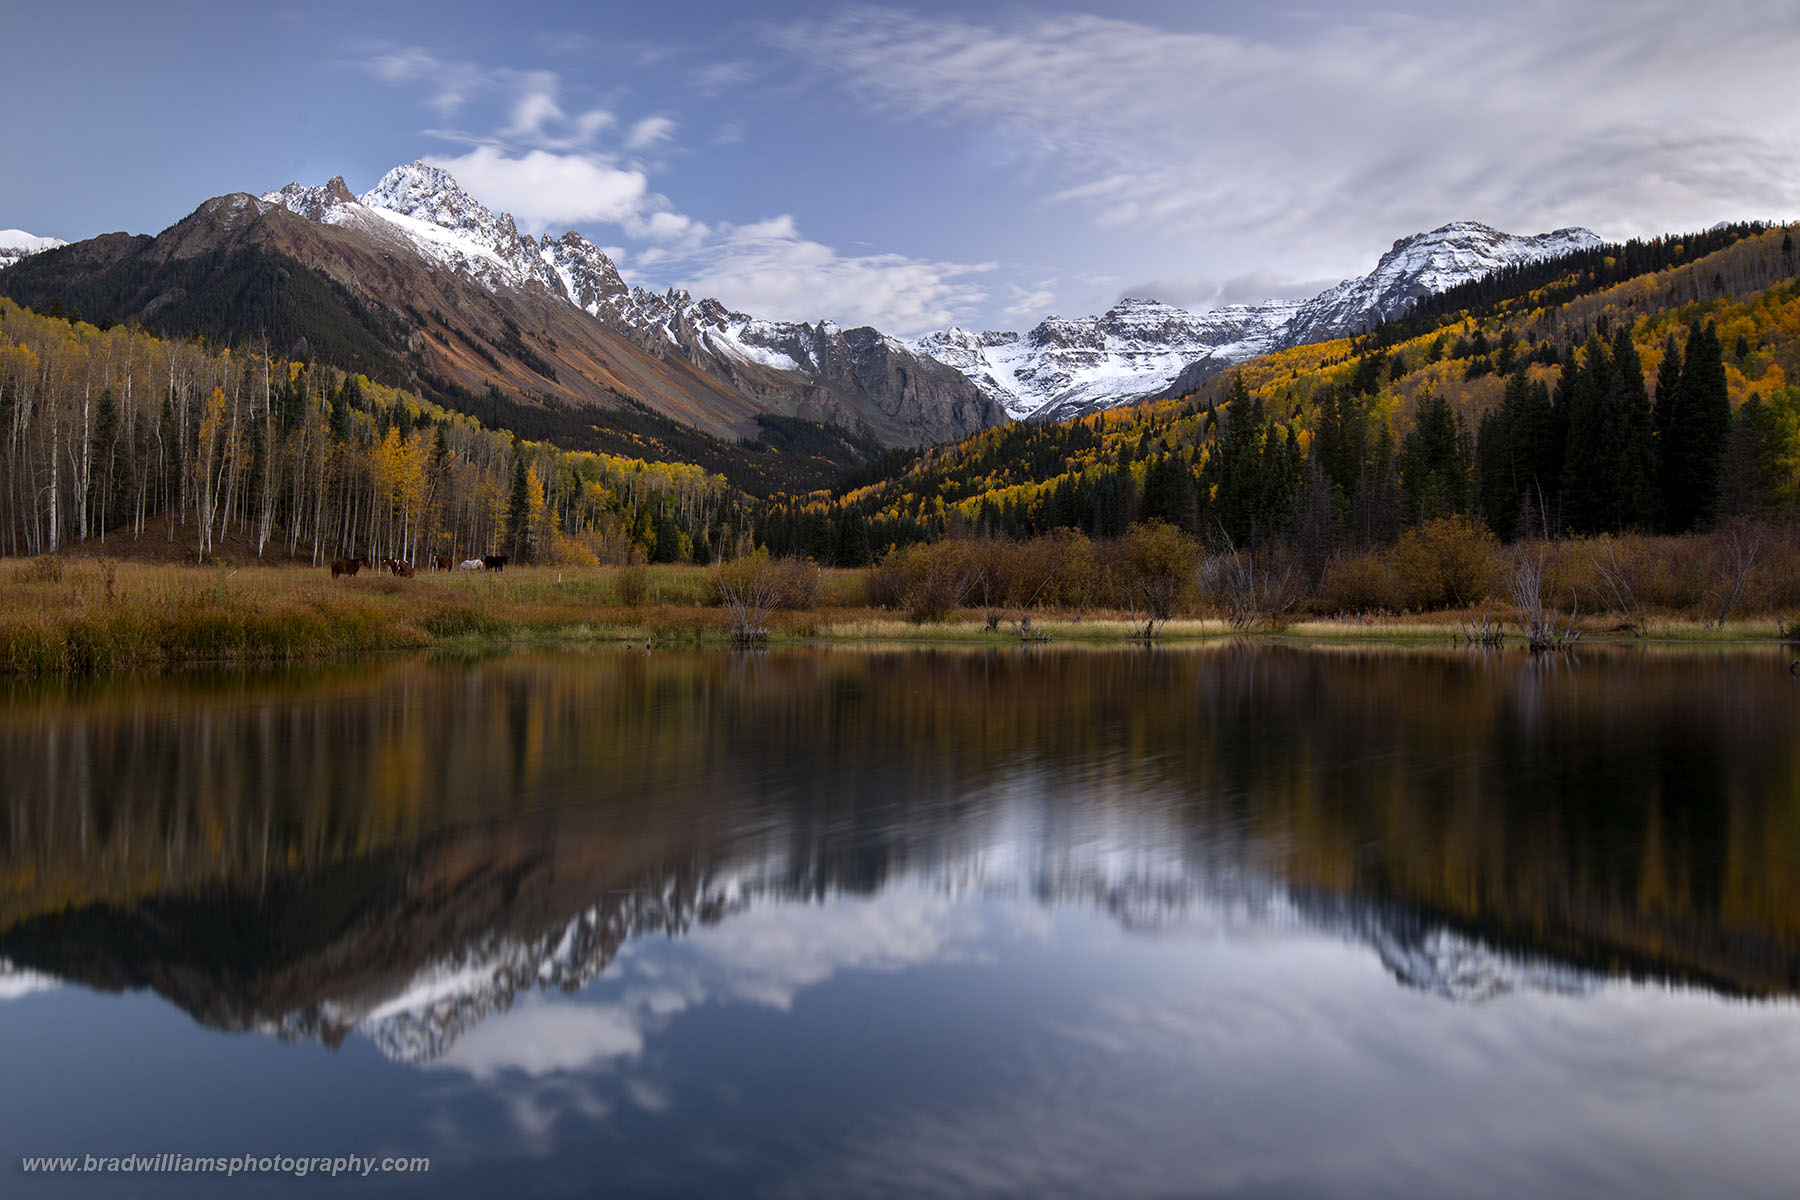 Mount Sneffels Wilderness, Uncompahgre National Forest, Colorado, Beaver, pond, fall, photo